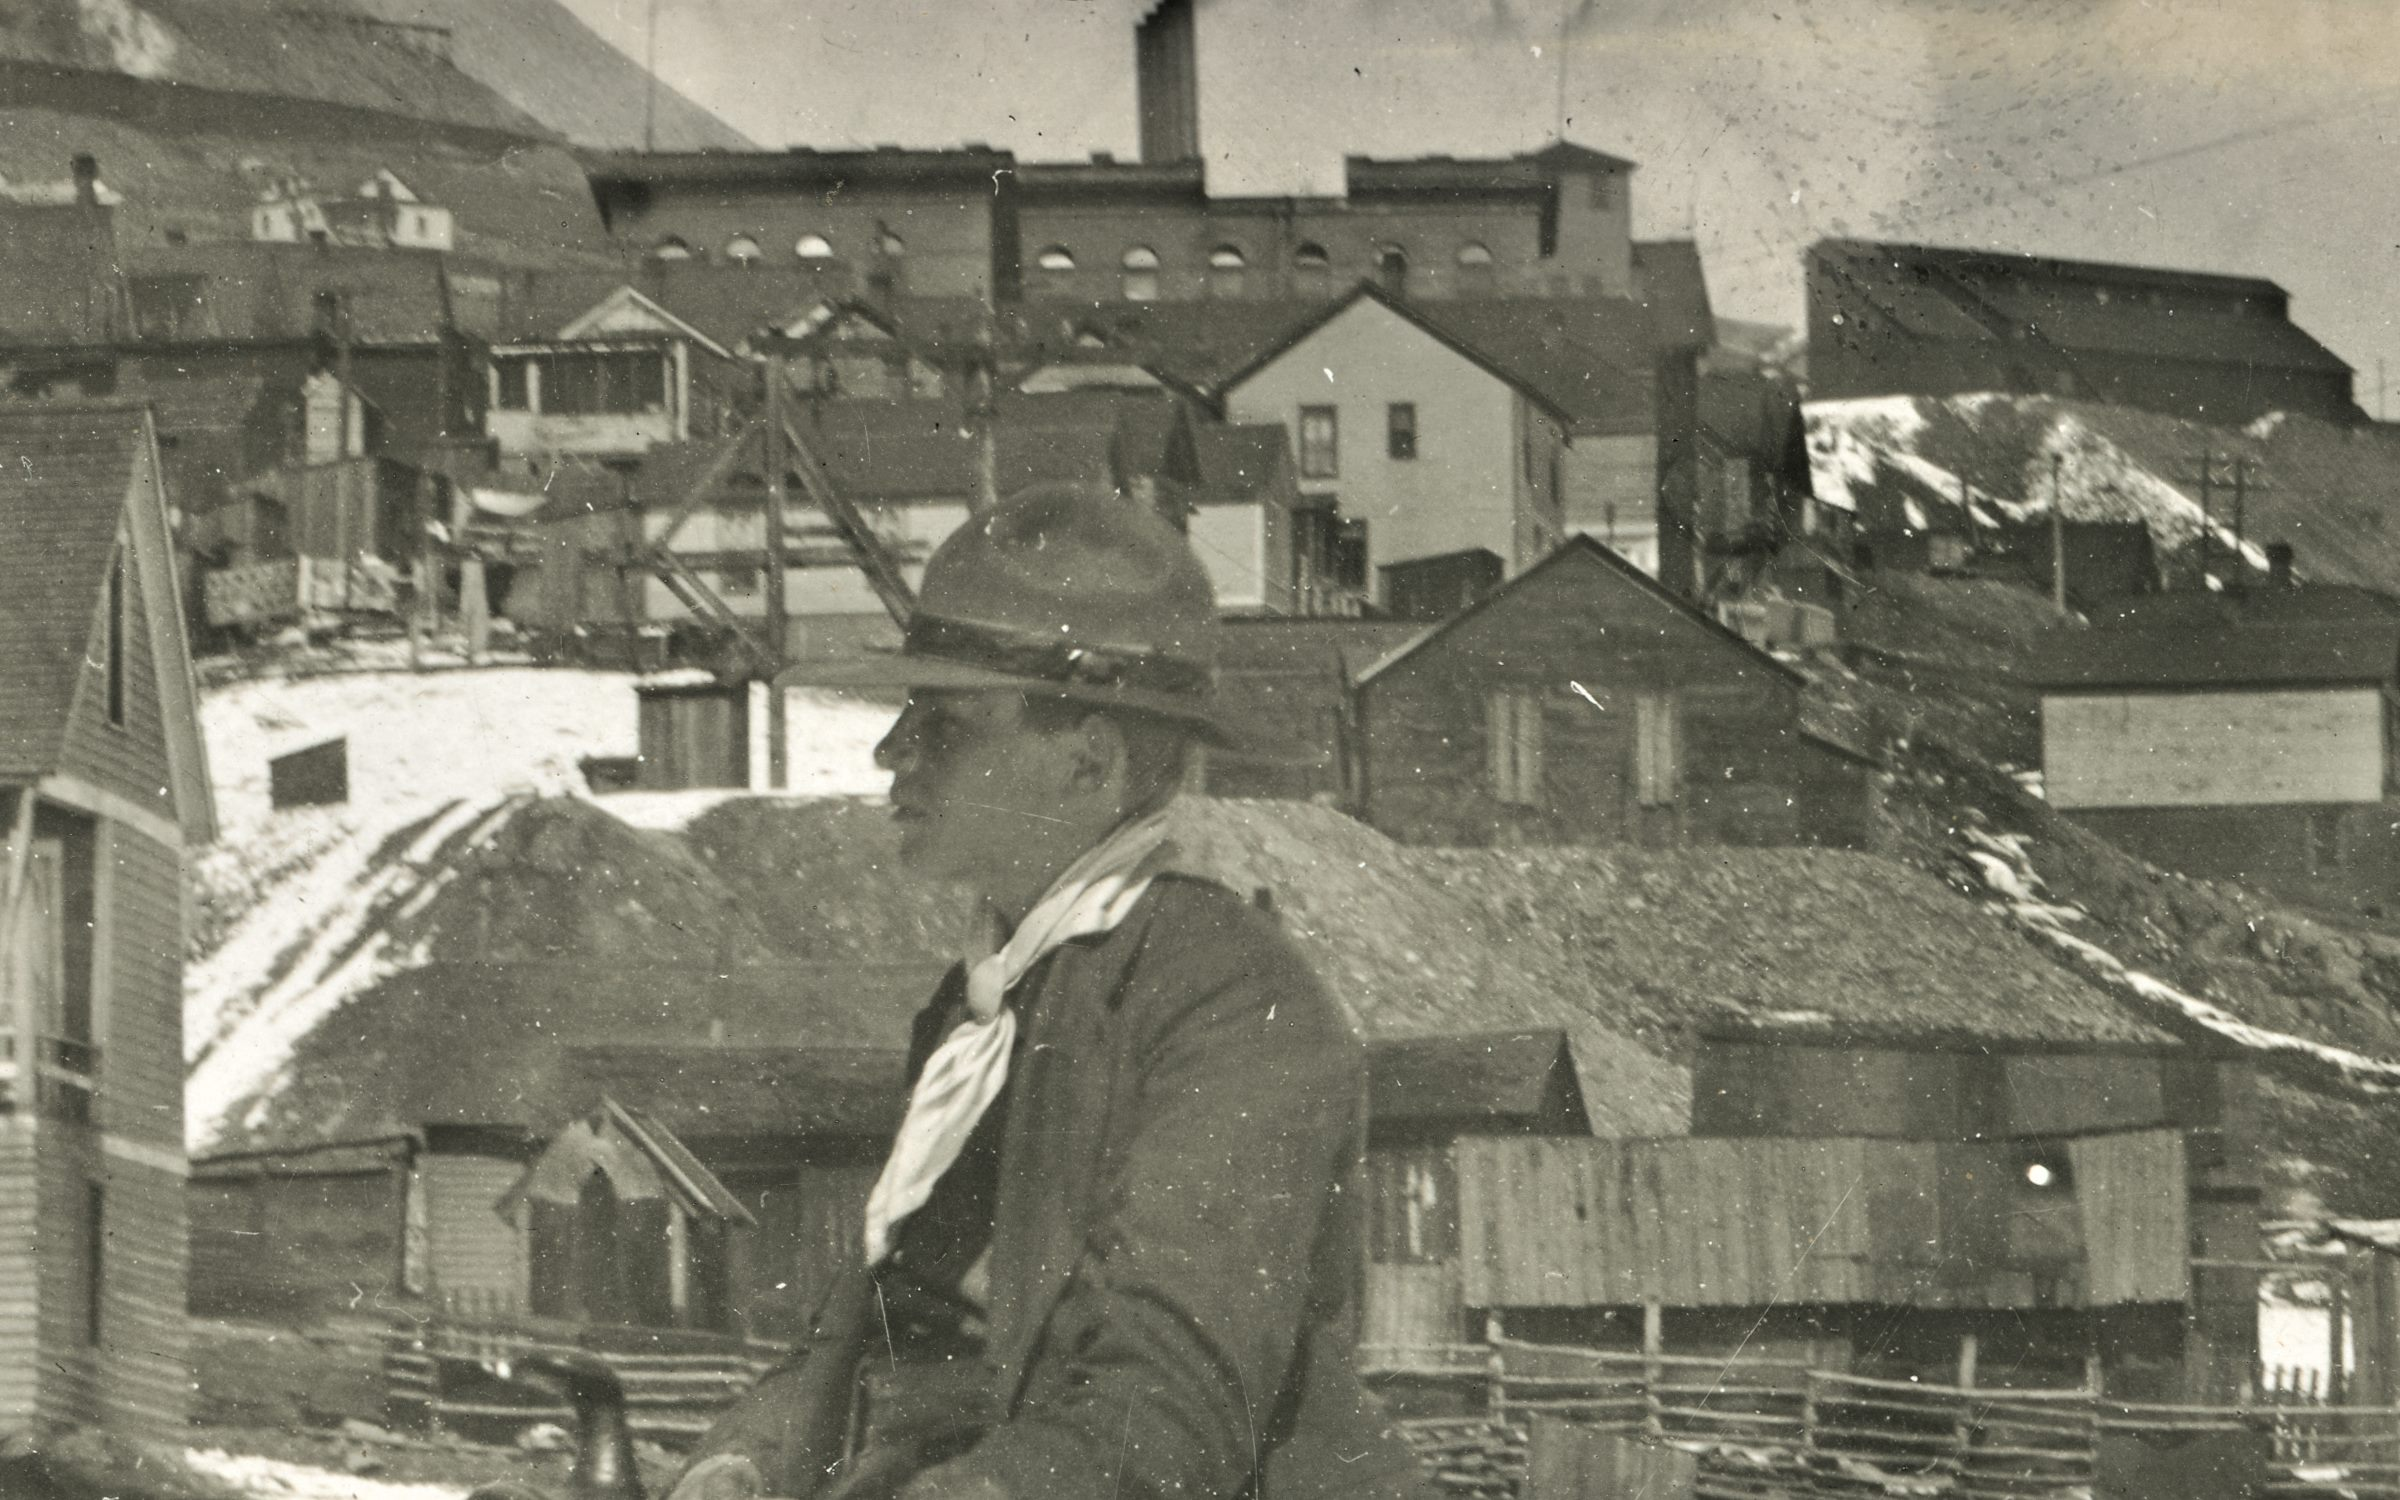 I think this image is at the eastern end of Spicer Avenue, and that the mine seen with its Head-Frame behind the head of the rider in the foreground is the Fortuna Mine, but I might be off as this been hard to decode fully where it was photographed, it might be even further south in Victor.    In background top right, about 1/4 down from top and covering about first 1/4 in from right-hand side there is seen the Ore-House of the Independence Mine. Also, about center sideways and about 1/5 down top is the brick structure of the Victor High School seen blocking most of the view to the Shaft House of the Independence Mine.    At the top left corner there is seen the massive dumps of the Portland Mines and part of the Crib-wall below the No. 2 Shaft is seen, so yes, the mines really set their feel on town.